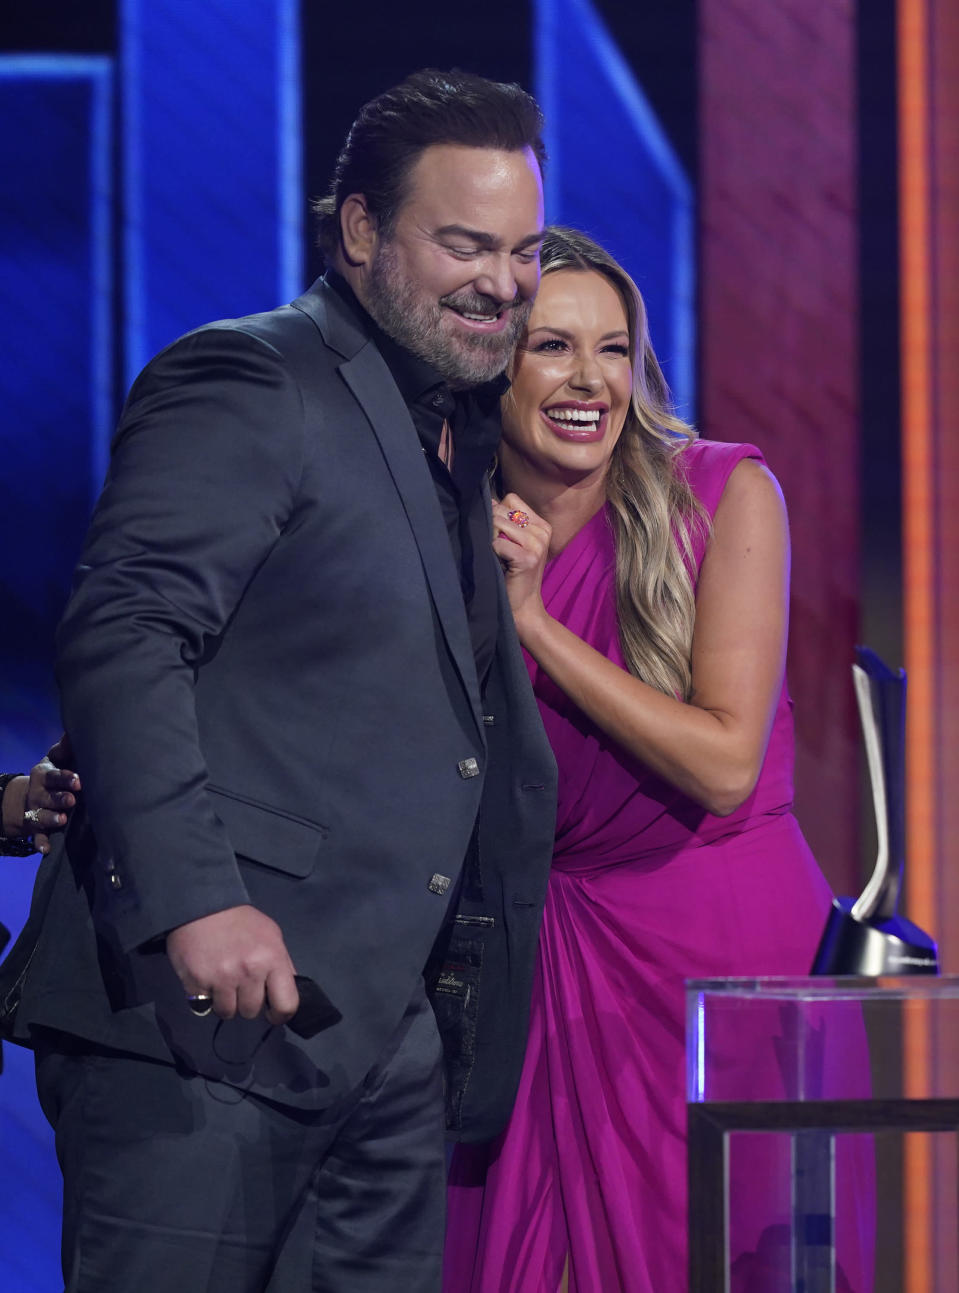 """Lee Brice, left, and Carly Pearce accept the award for single of the year for """"I Hope You're Happy Now"""" at the 56th annual Academy of Country Music Awards on Sunday, April 18, 2021, at the Grand Ole Opry in Nashville, Tenn. (AP Photo/Mark Humphrey)"""